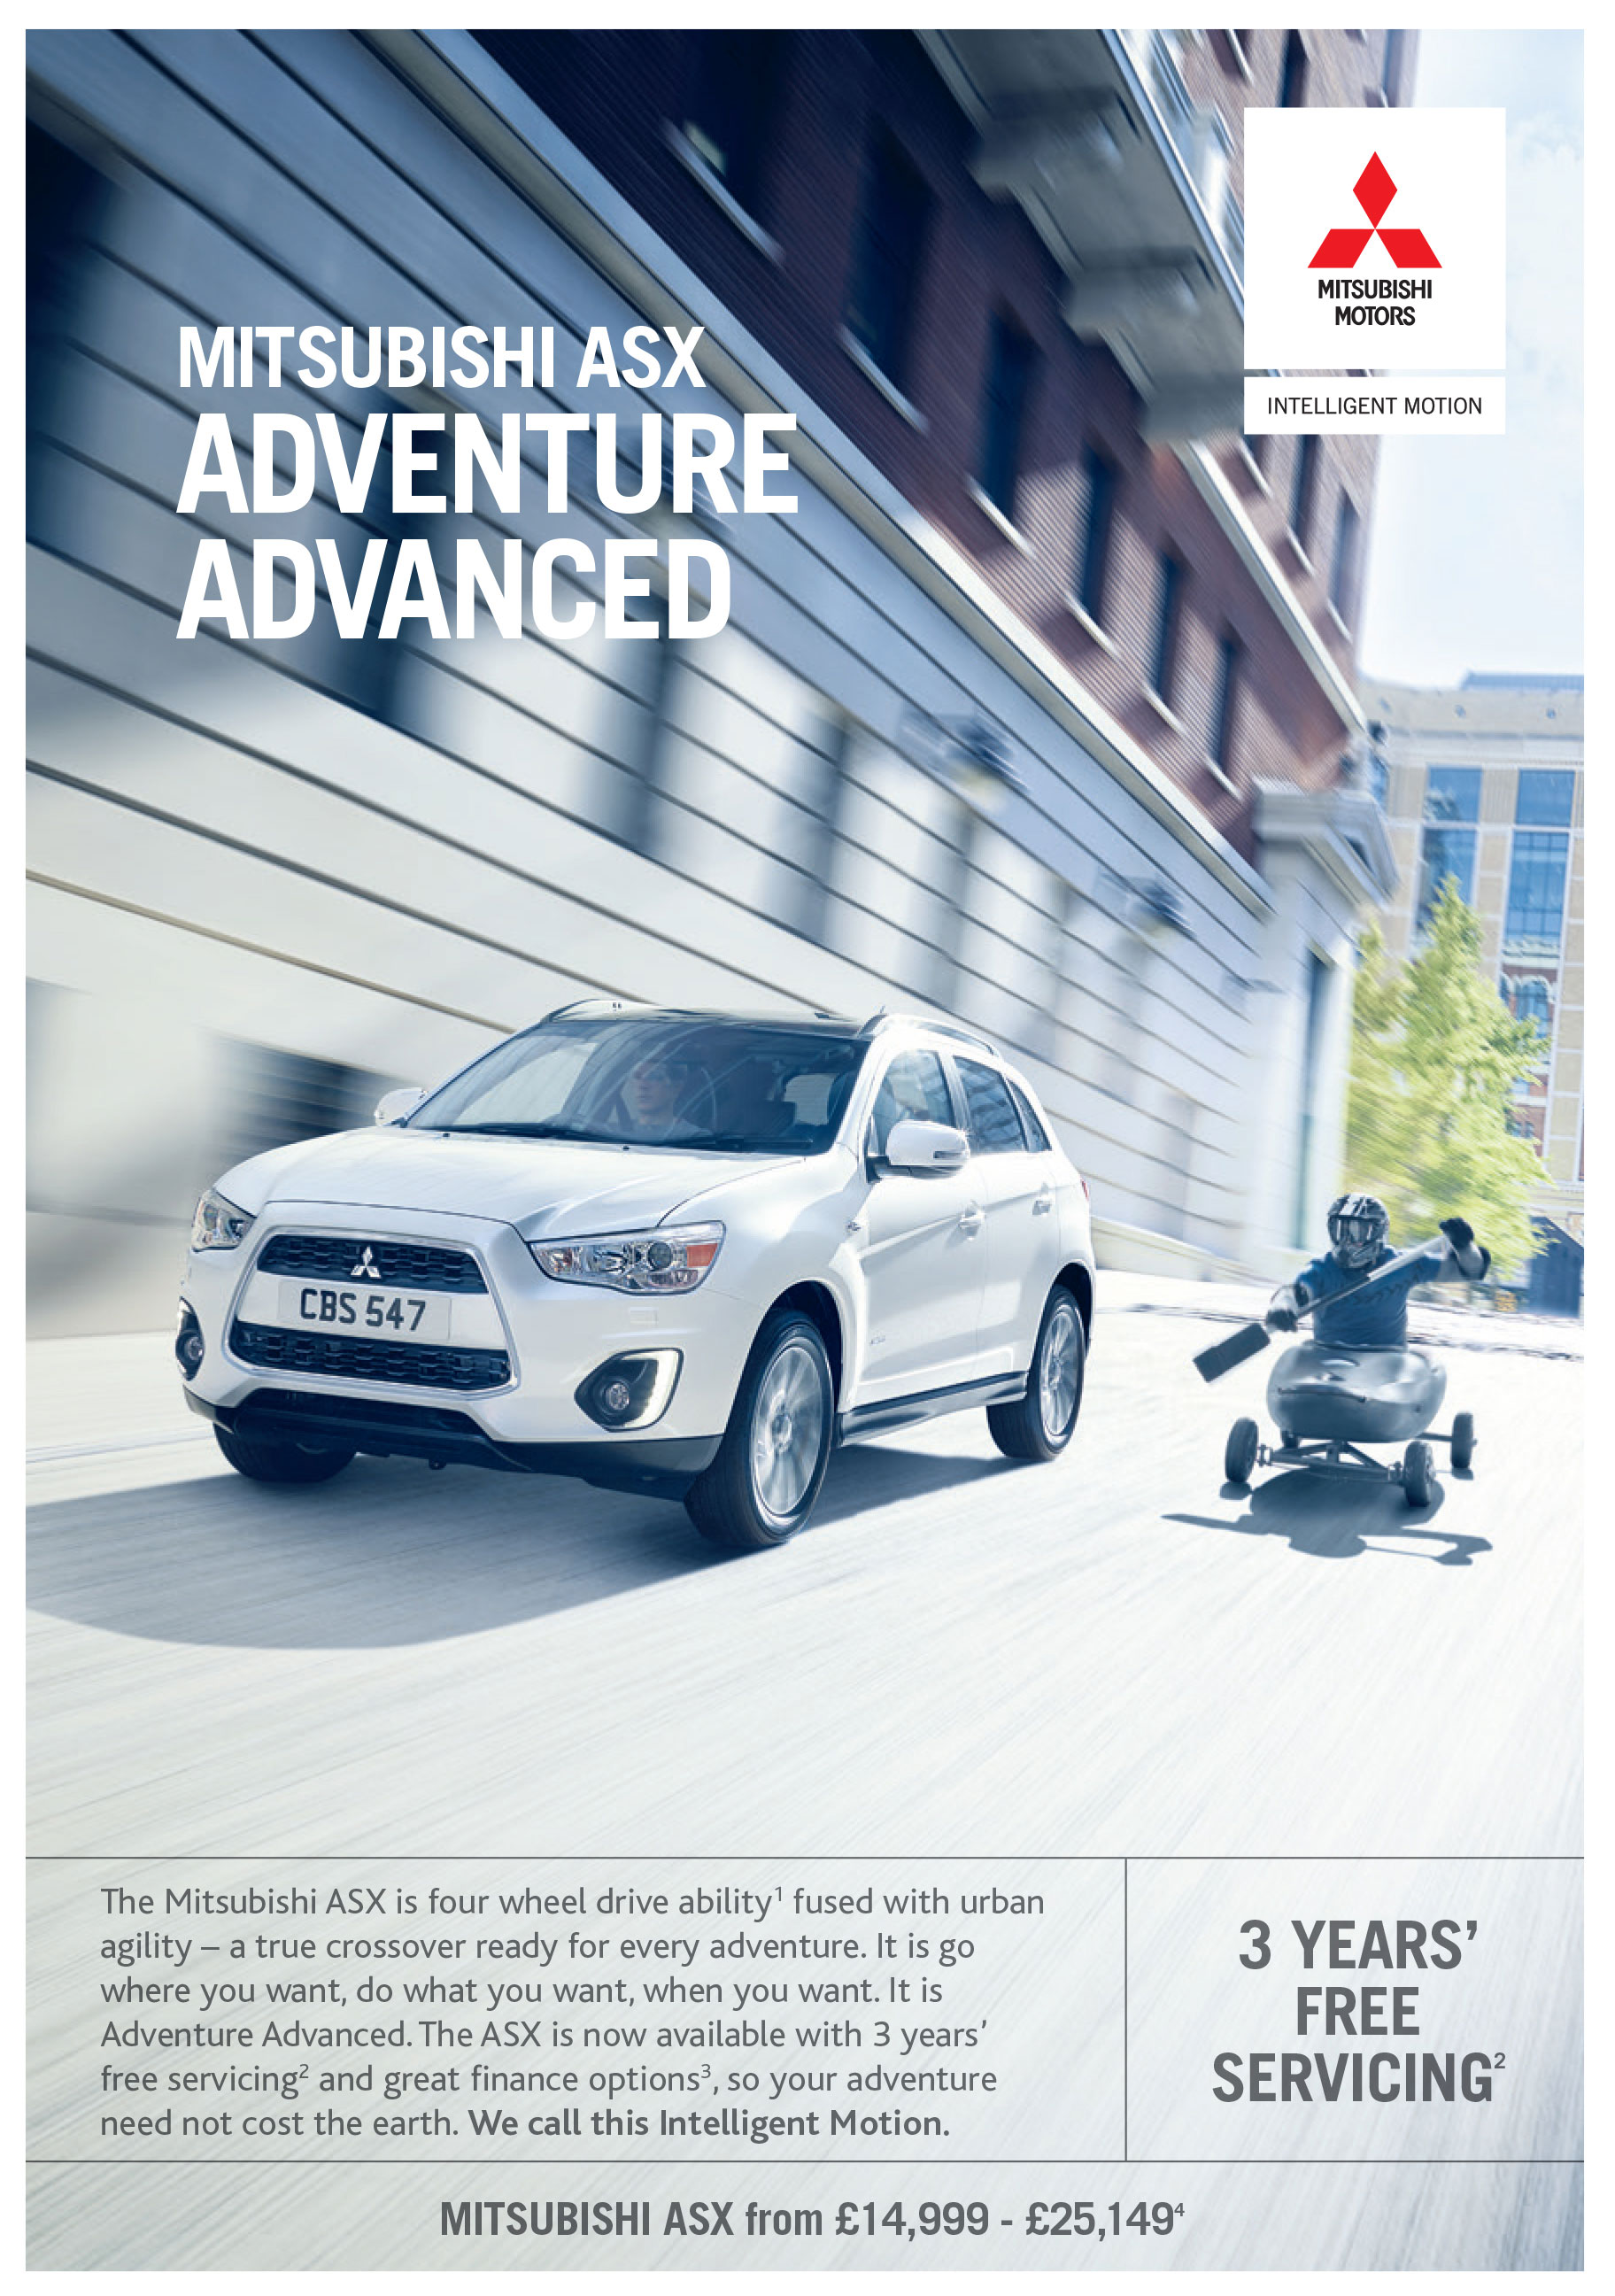 Adventure Advanced – can the ASX Satisfy an Adrenalin Junkie in the City?